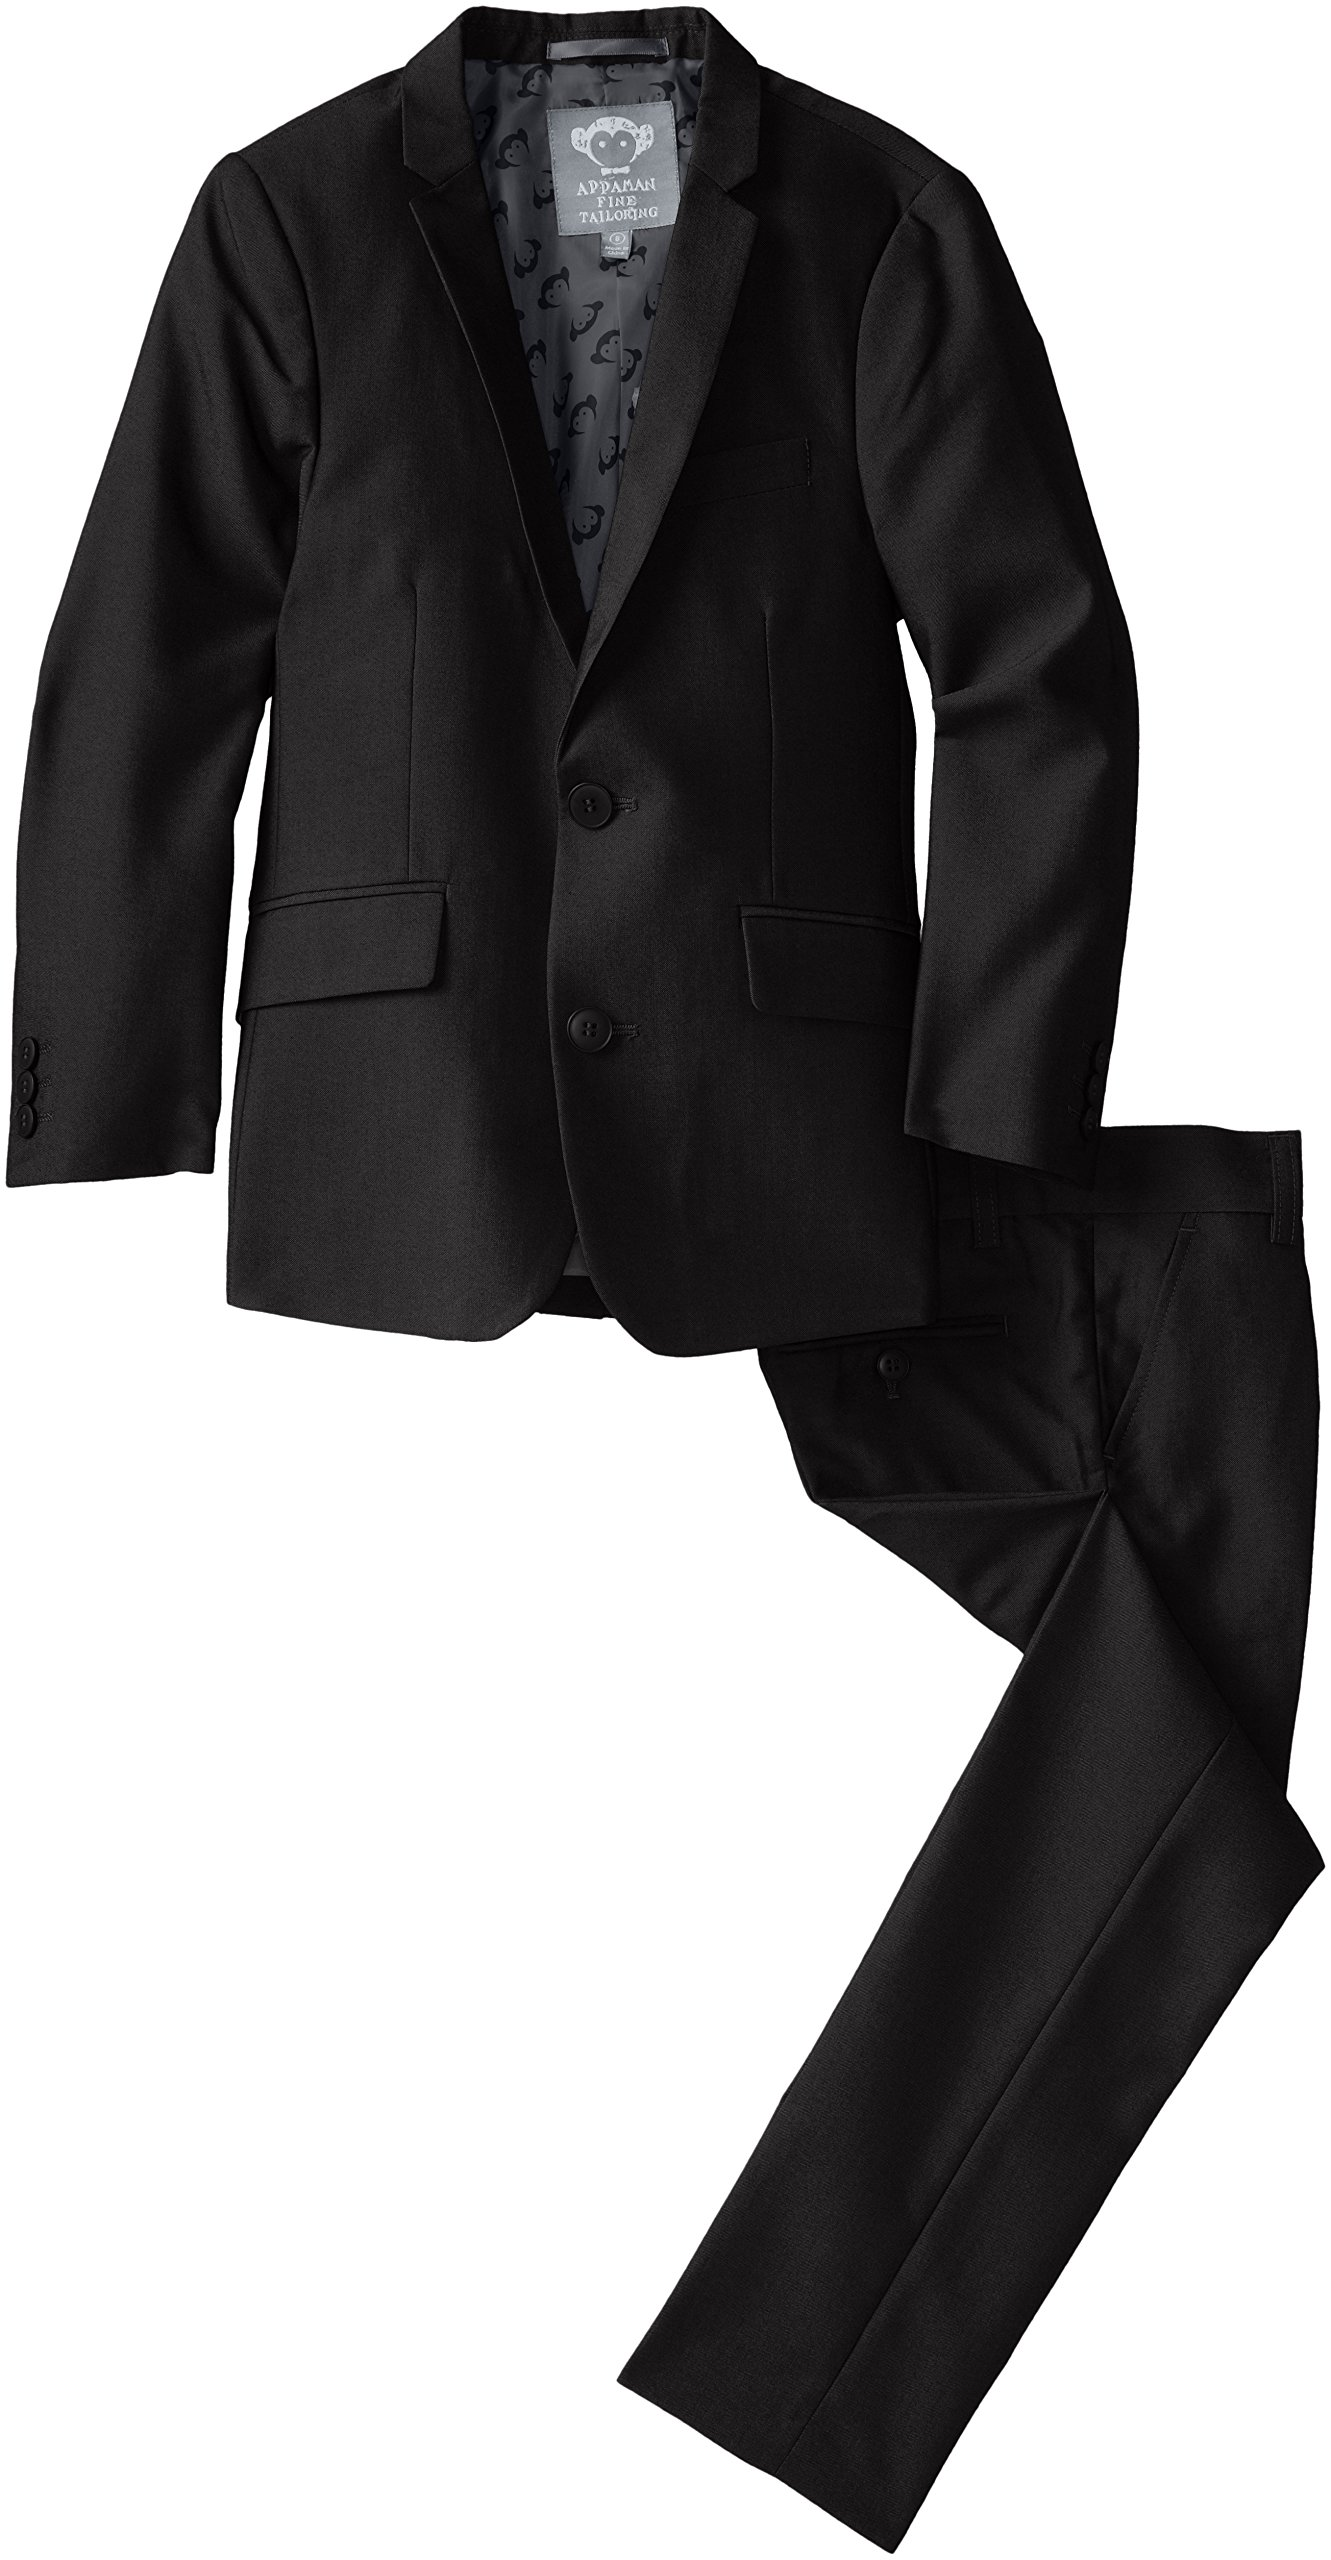 Appaman Big Boys' Two Piece Classic Mod Suit, Black, 10 by Appaman